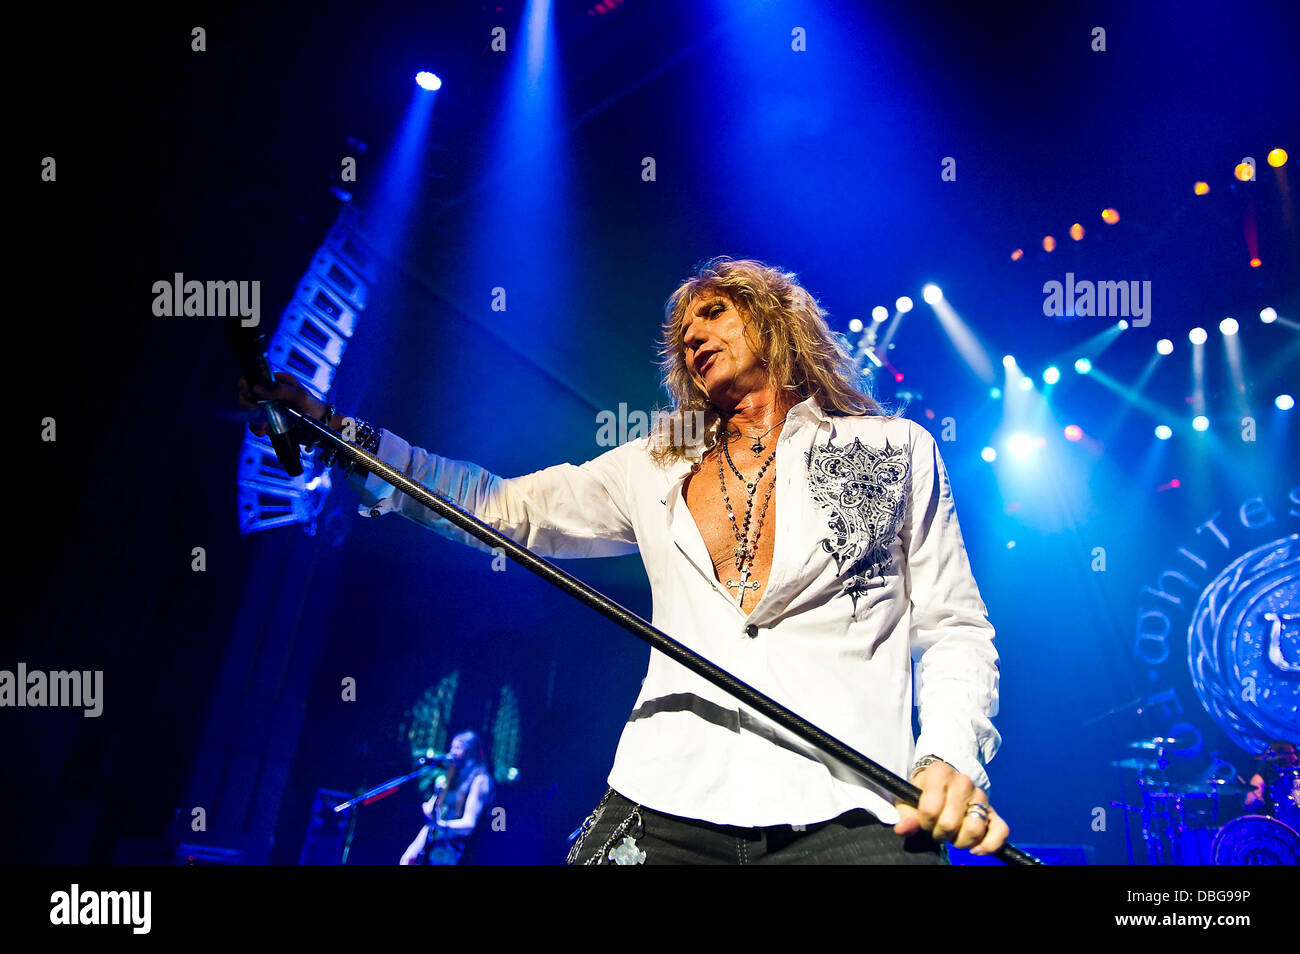 David Coverdale performing with Whitesnake at the HMV